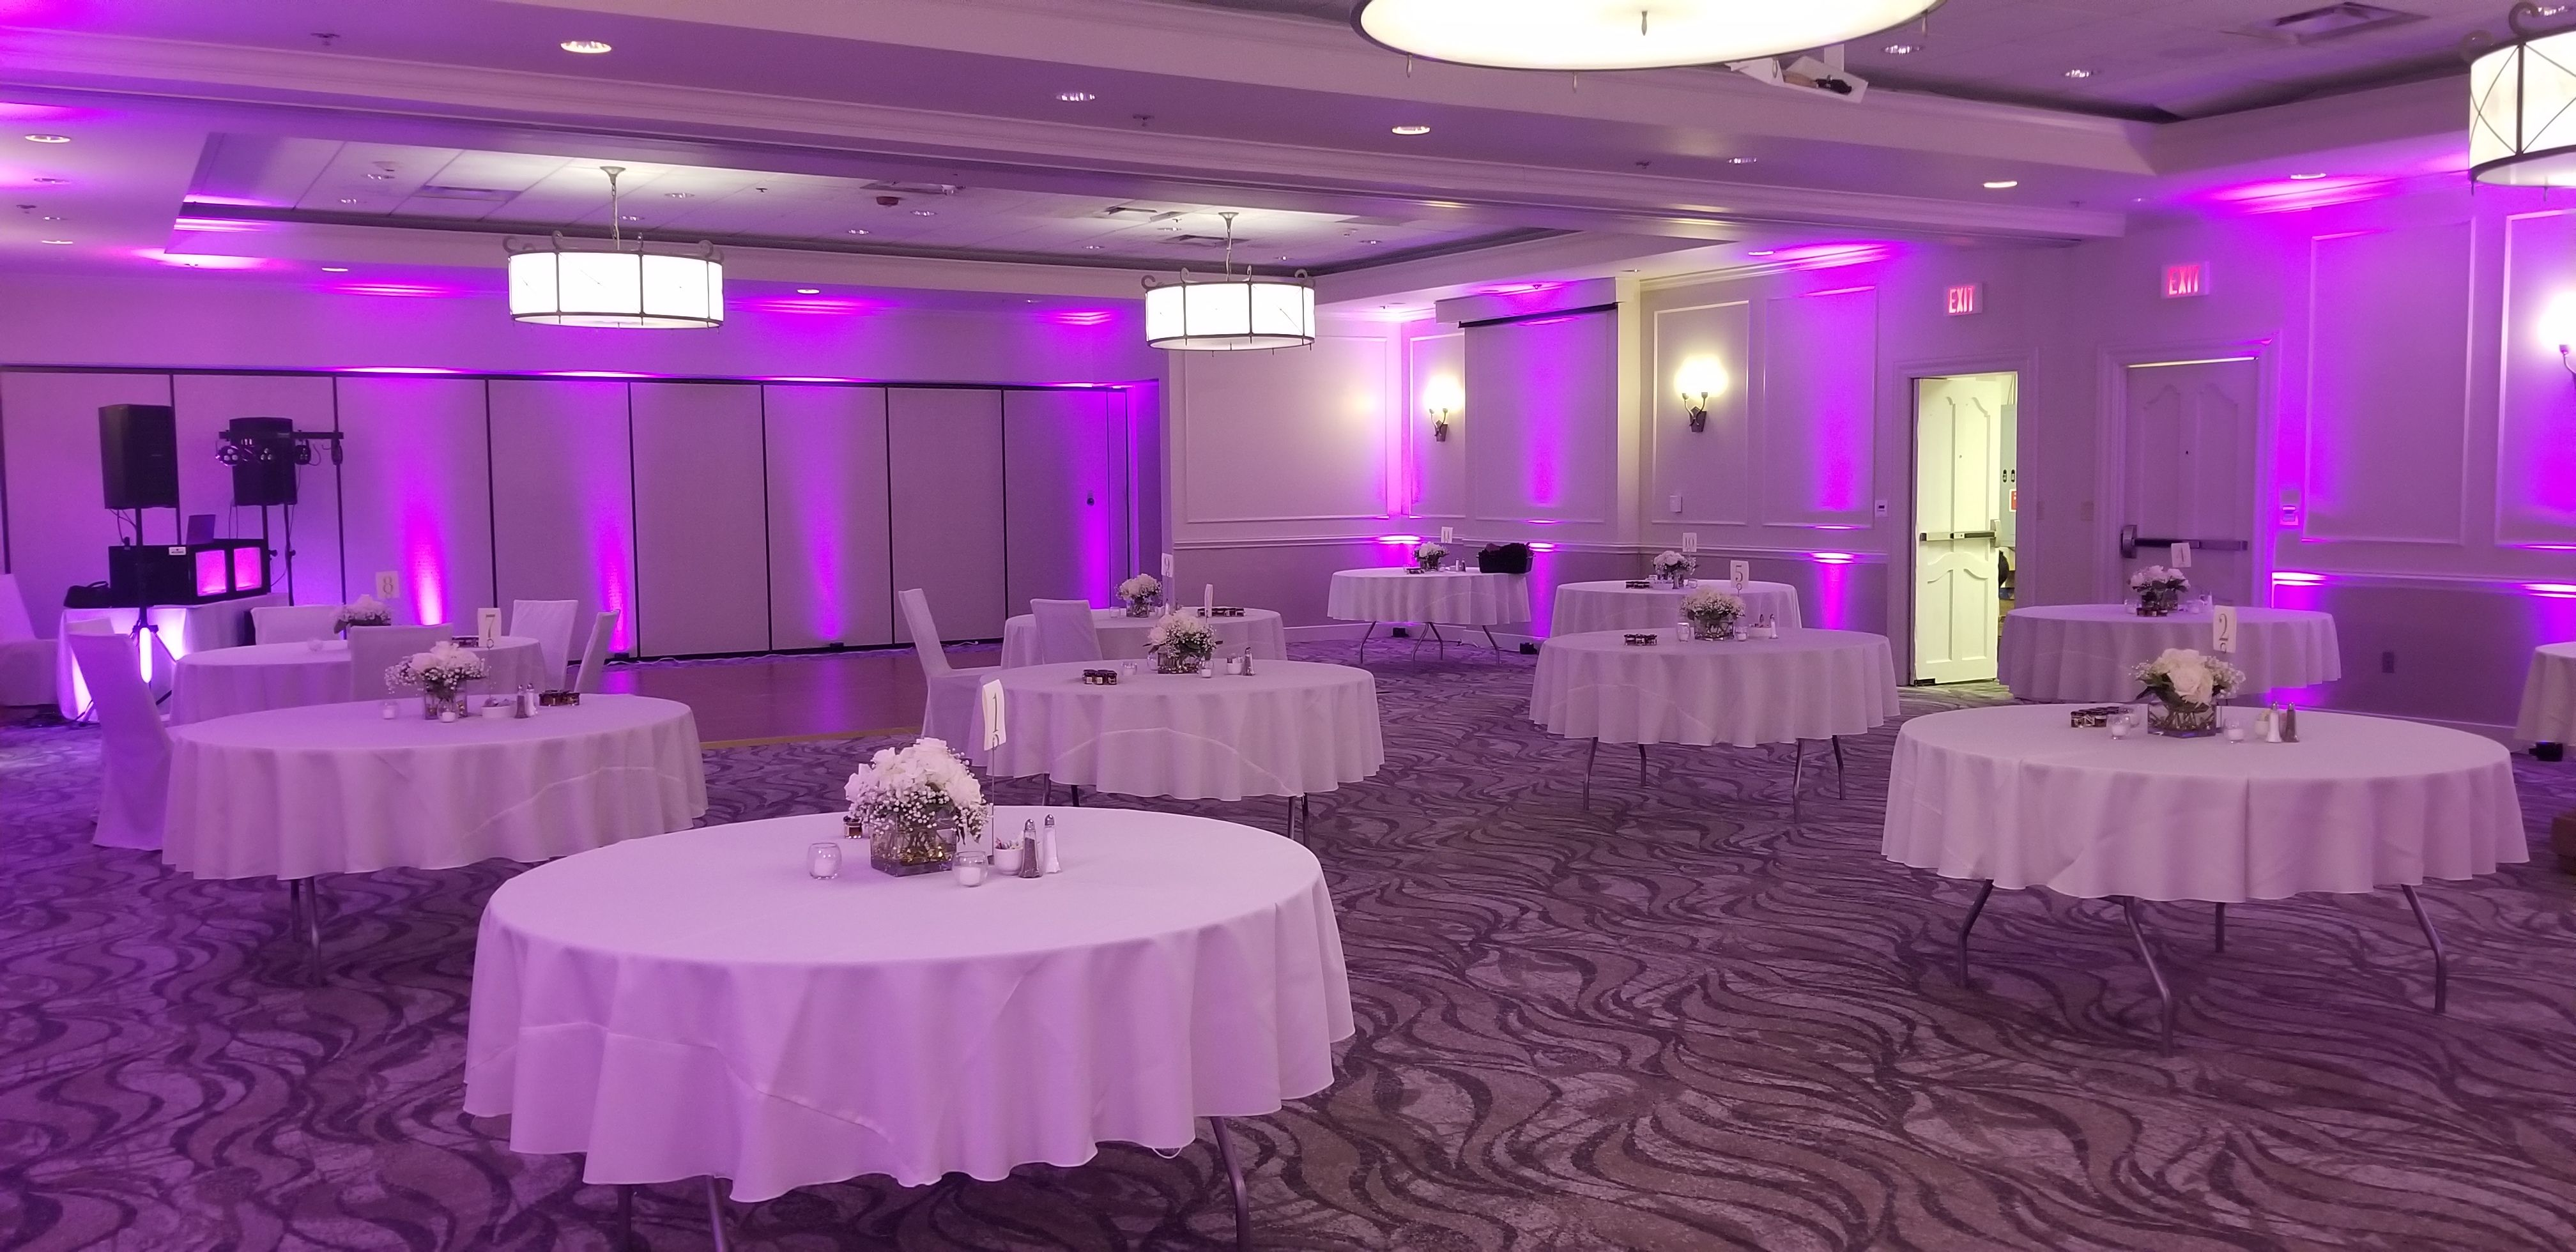 Wedding Uplighting Uplighting Wedding Wedding Reception Rooms Rose Gold Wedding Cakes